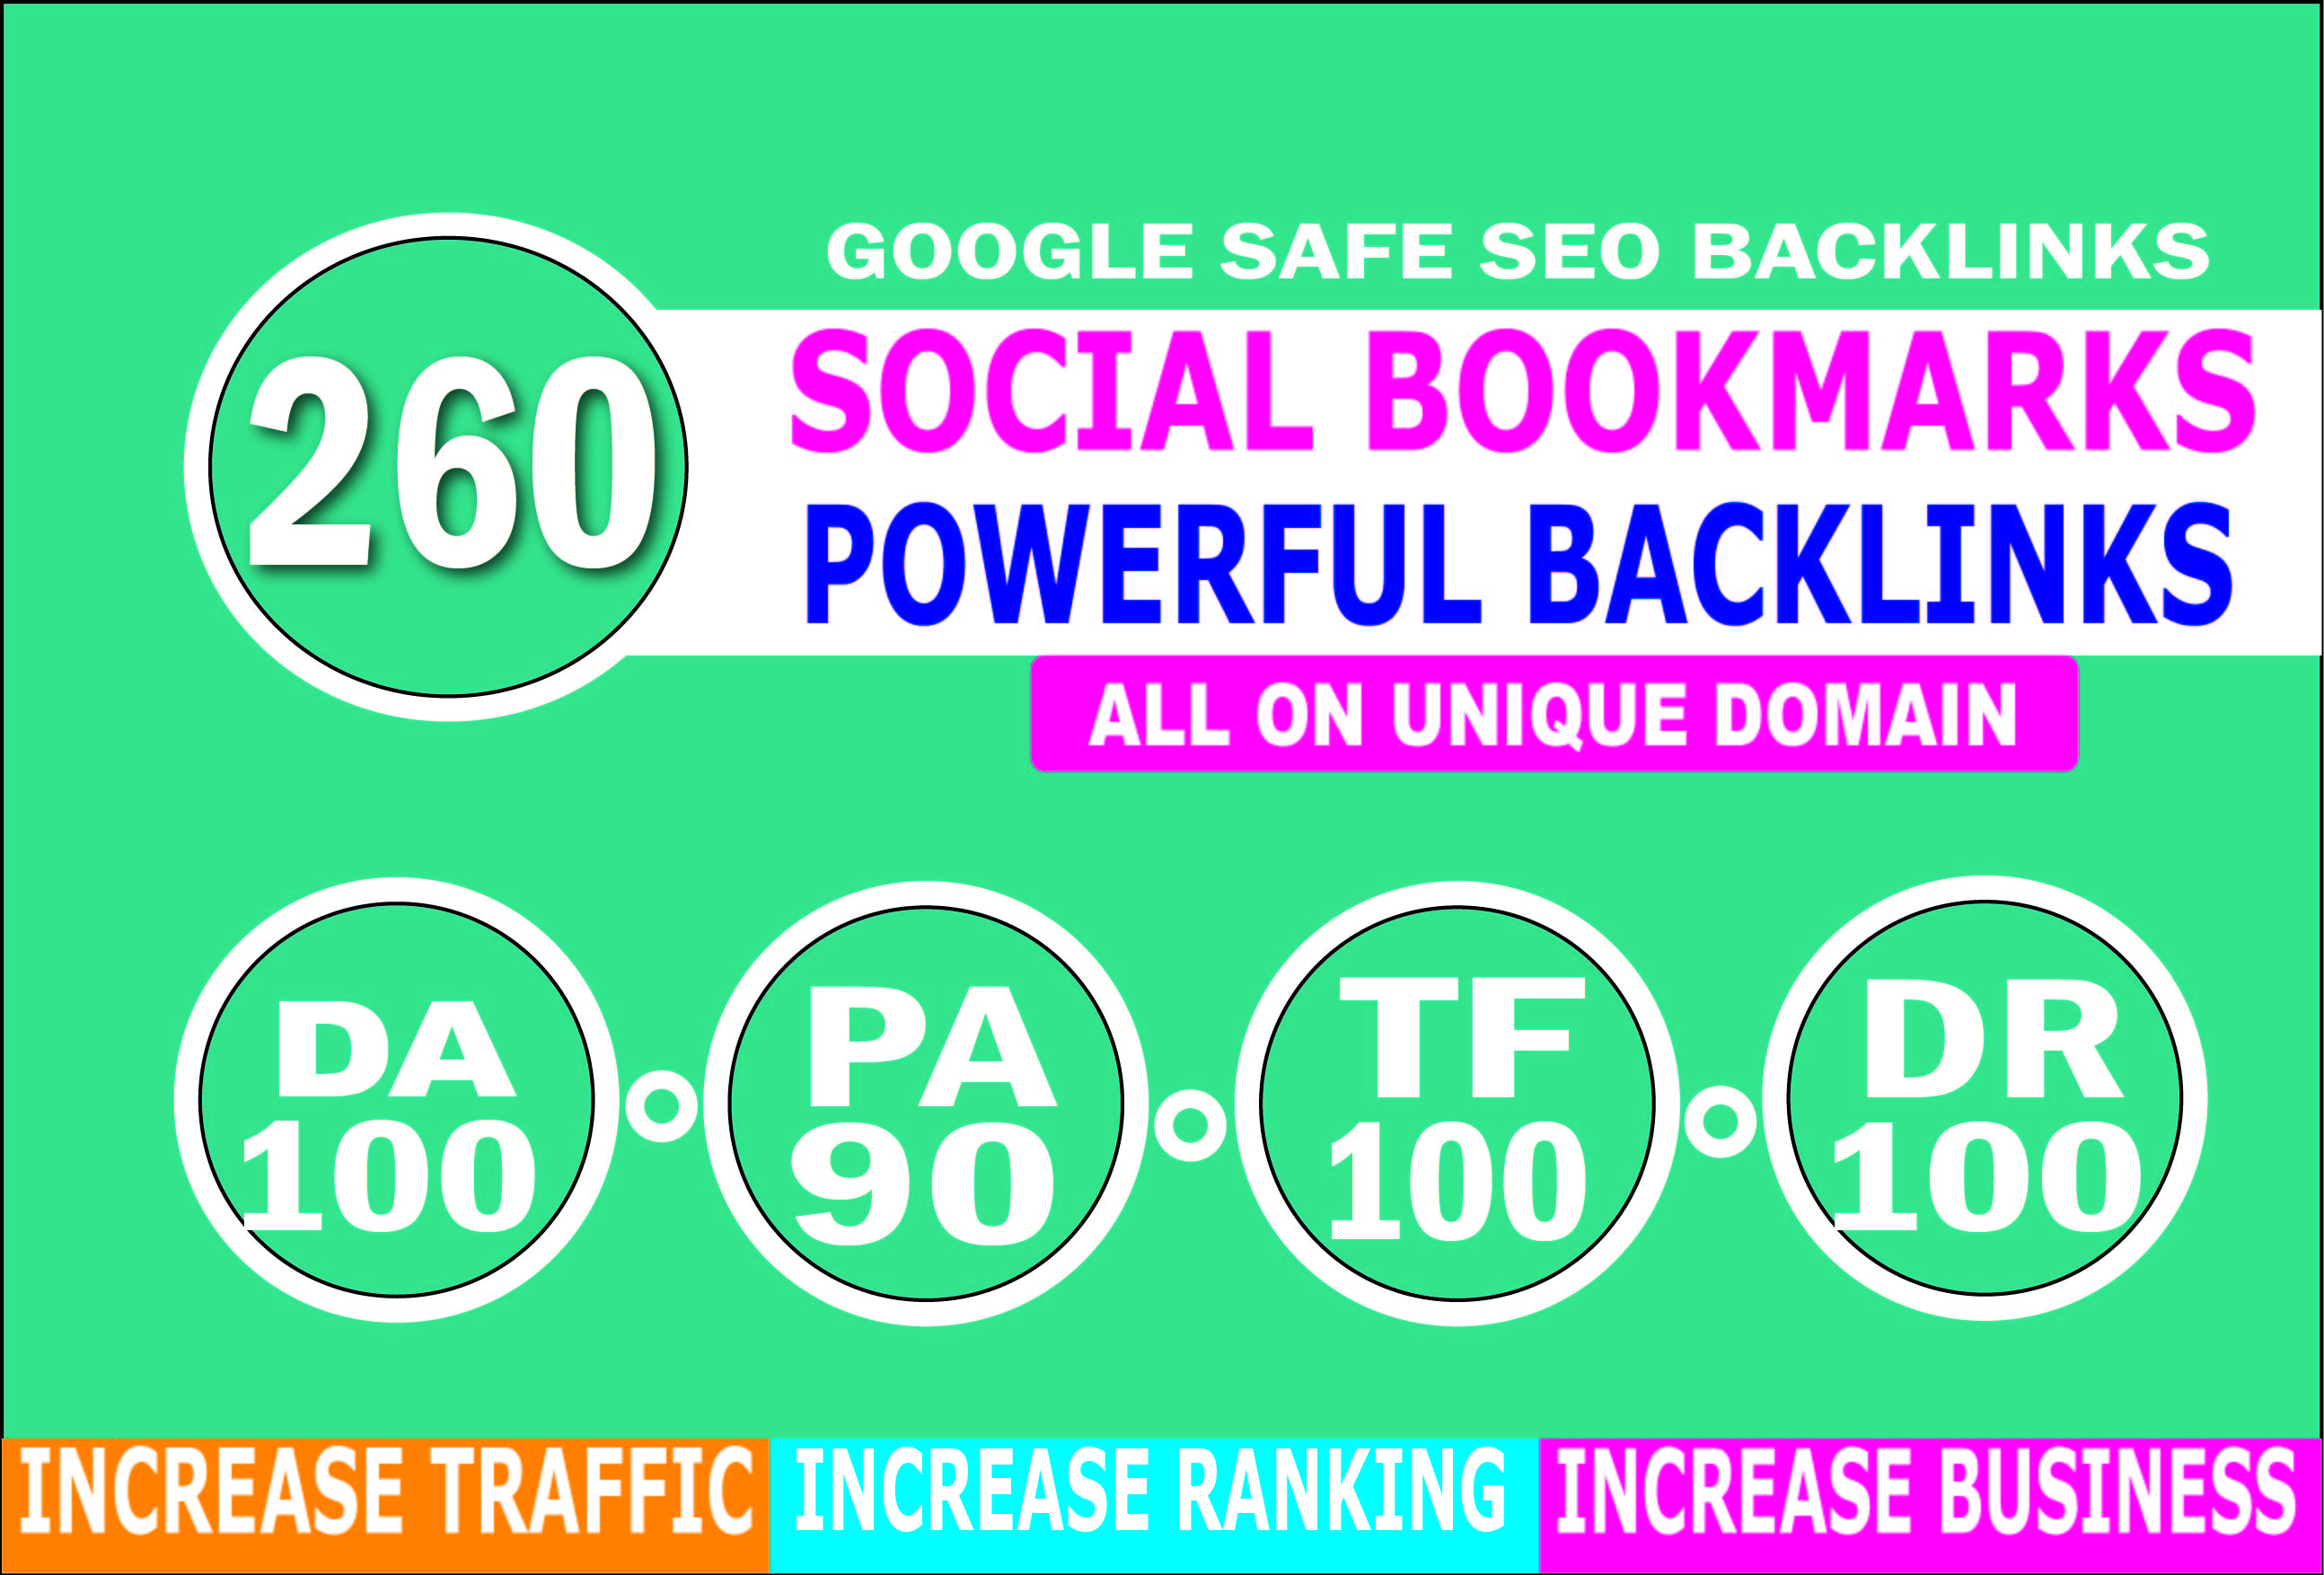 I will do website ranking on Google 1st page by 260 social bookmarks seo backlinks